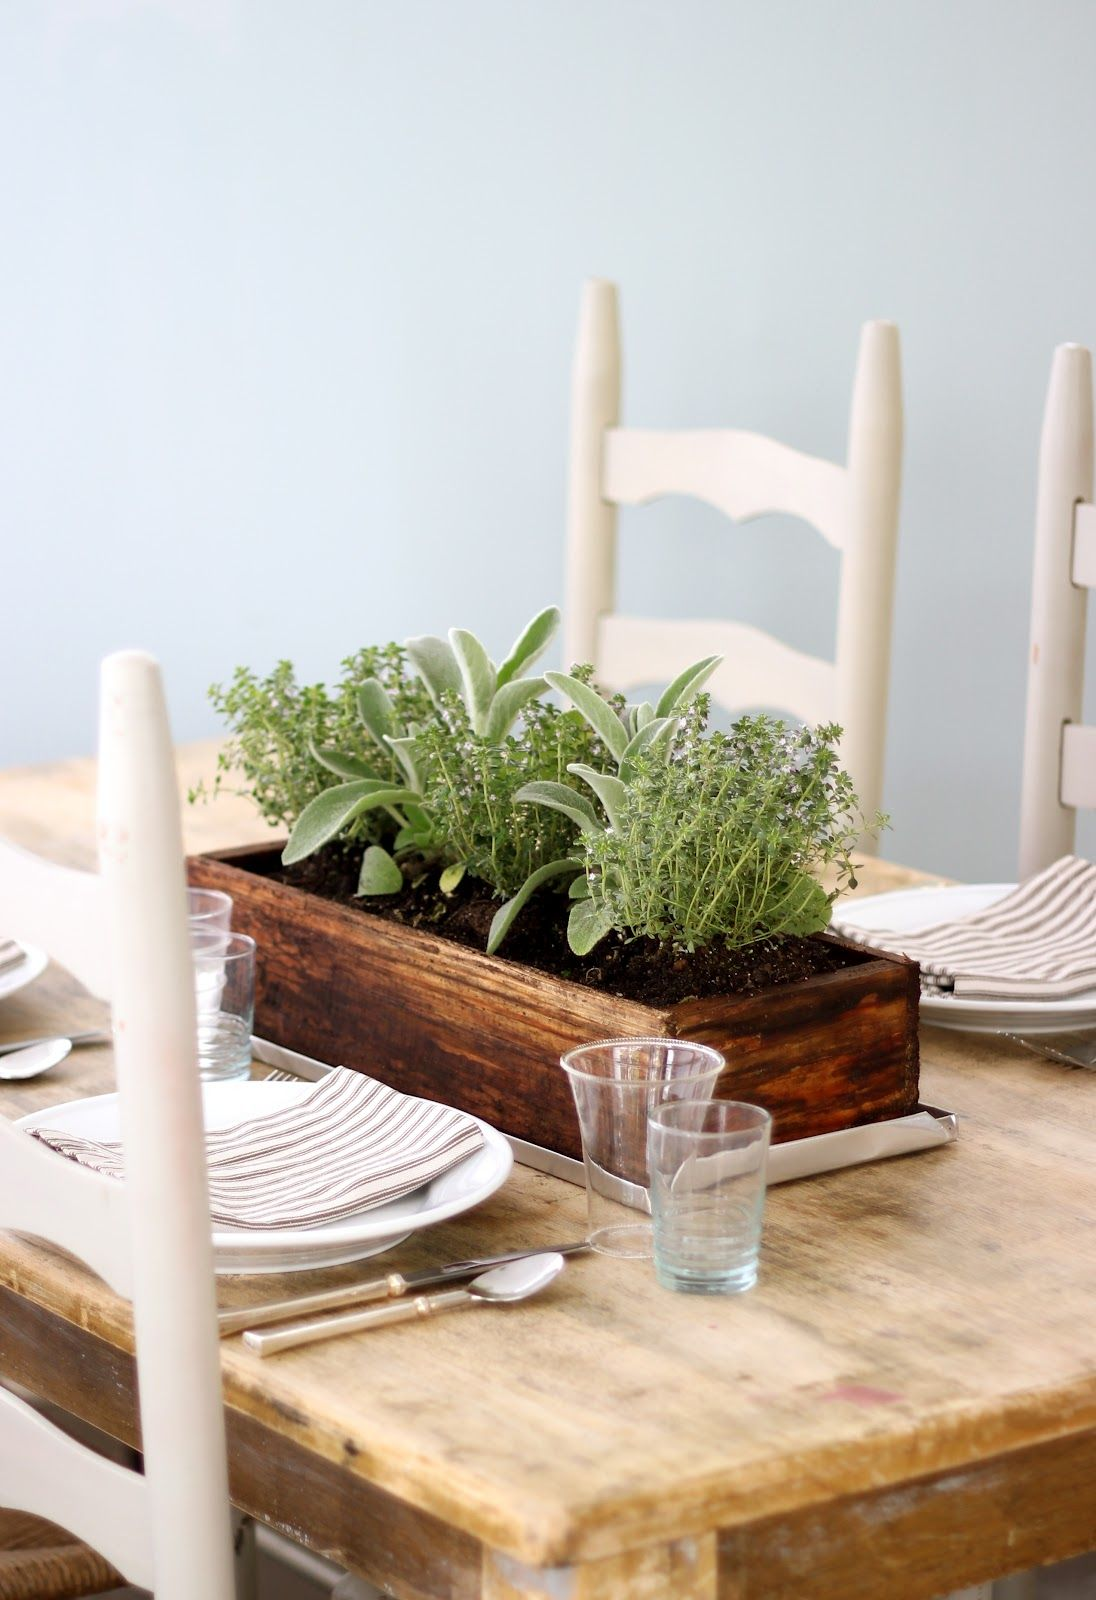 Jenny Steffens Hobick Easy Summer Centerpiece Planted Herbs Kitchen Table Centerpiece Table Settings Everyday Summer Table Settings